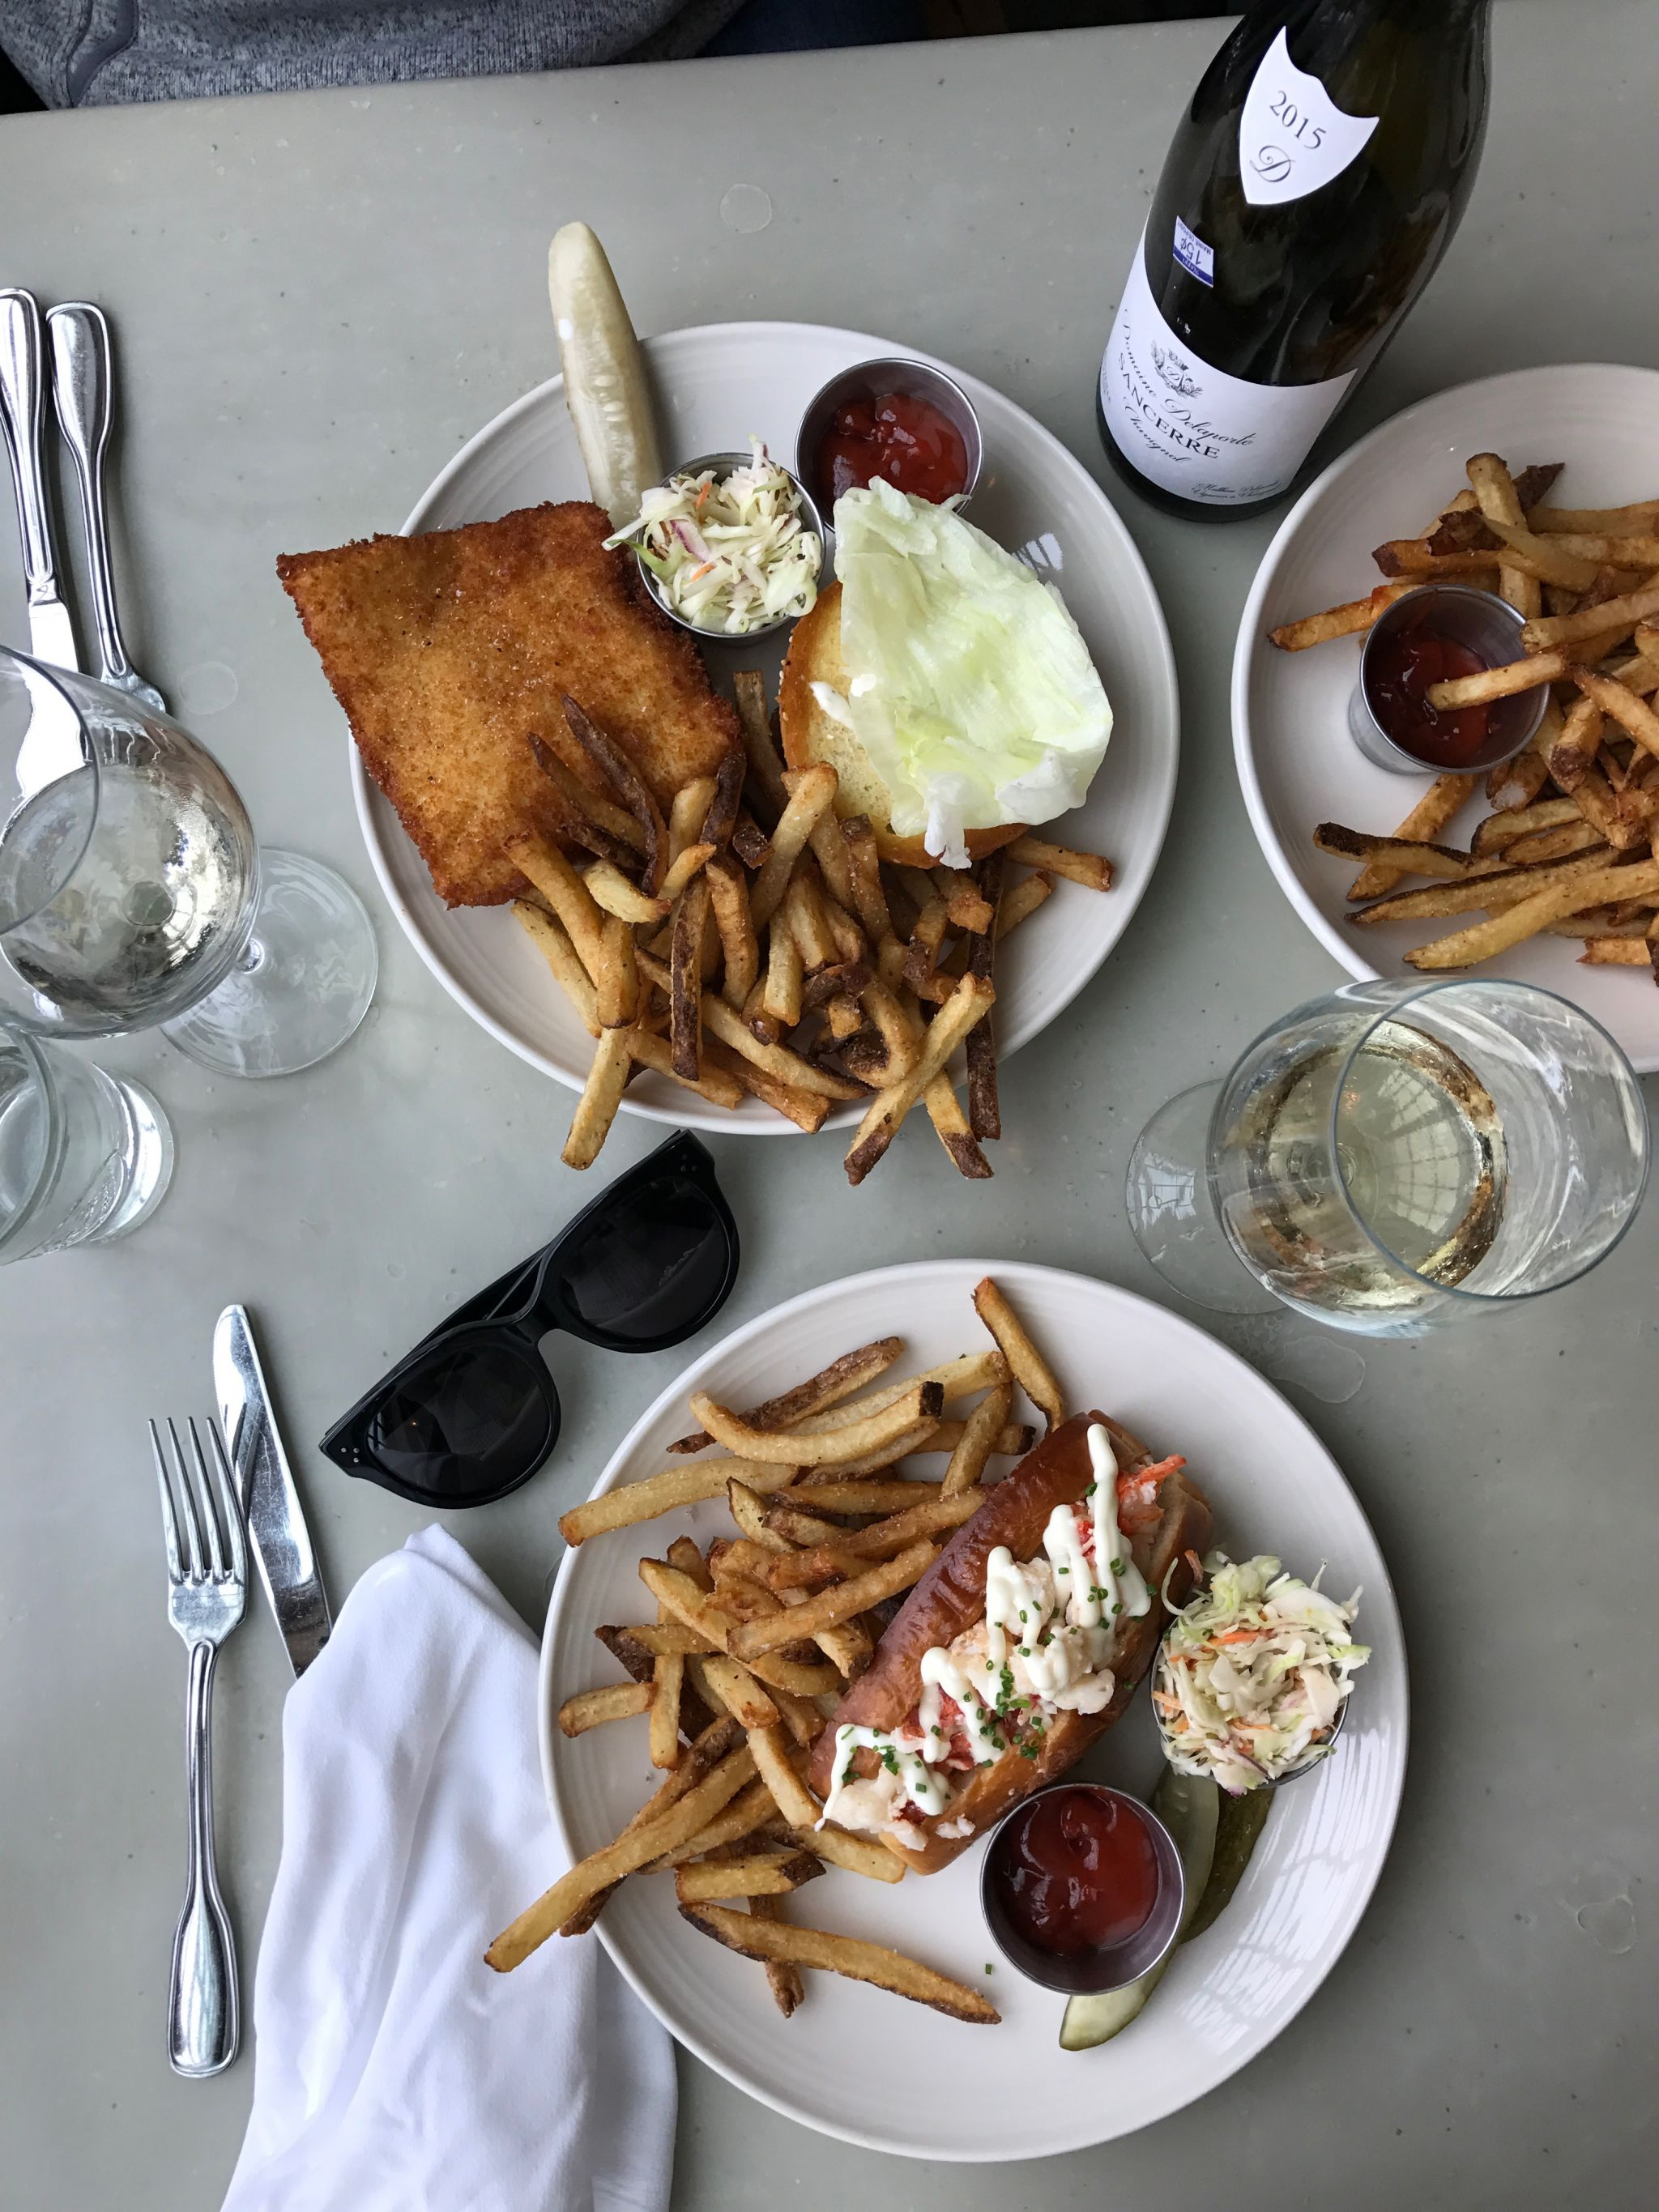 Travel blogger Meaghan Murray shares a restaurant review for Scales in Portland, ME on her blog The Stopover